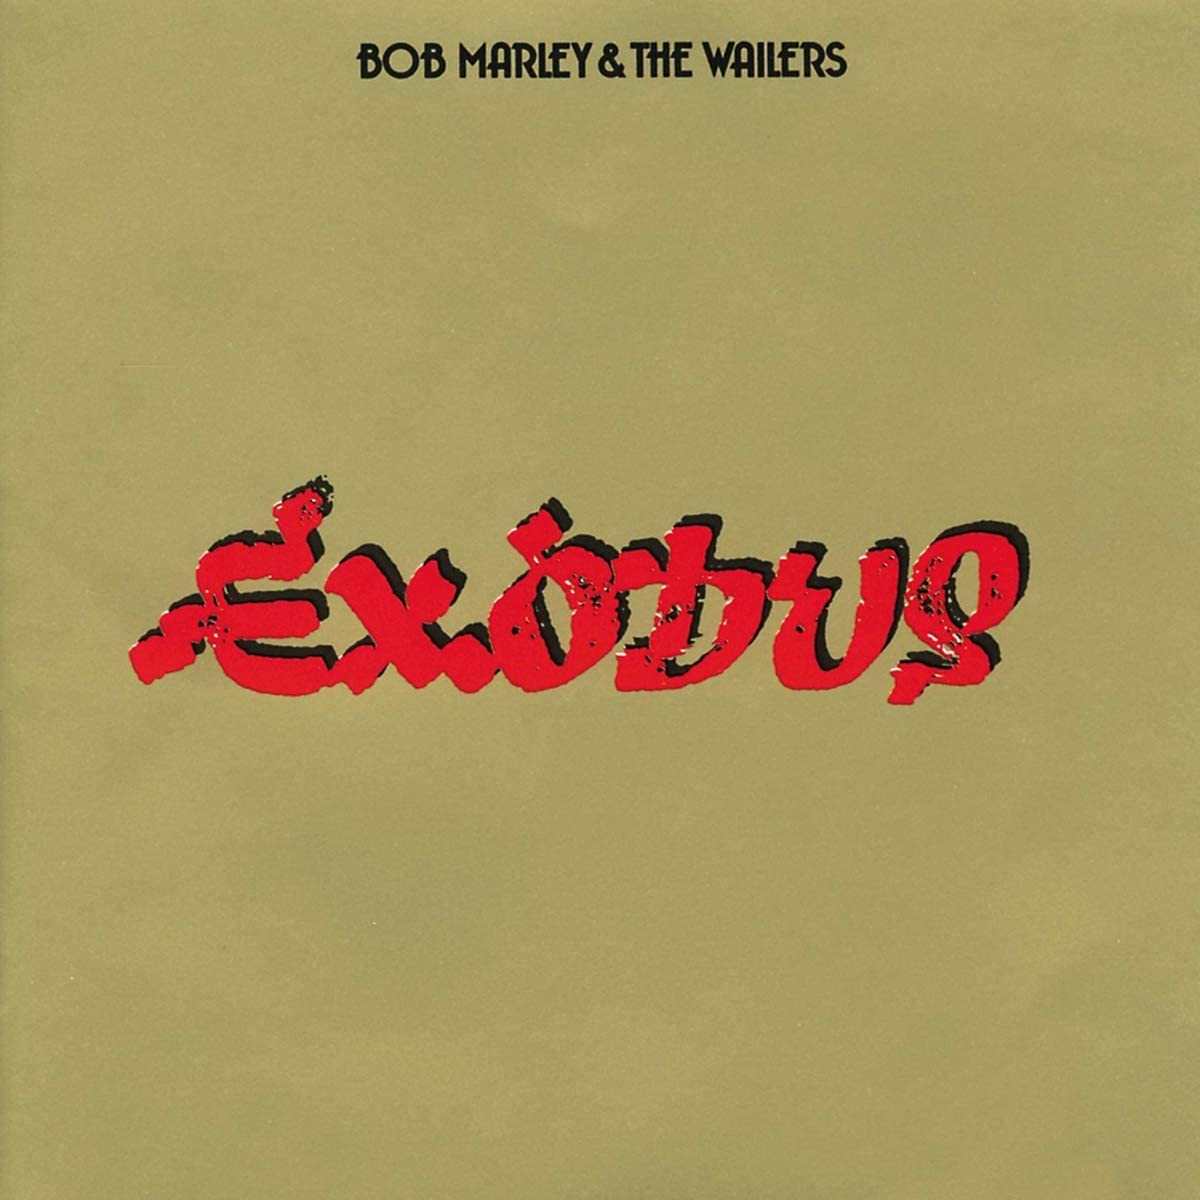 Bob Marley & The Wailers - Exodus - 180gm Vinyl